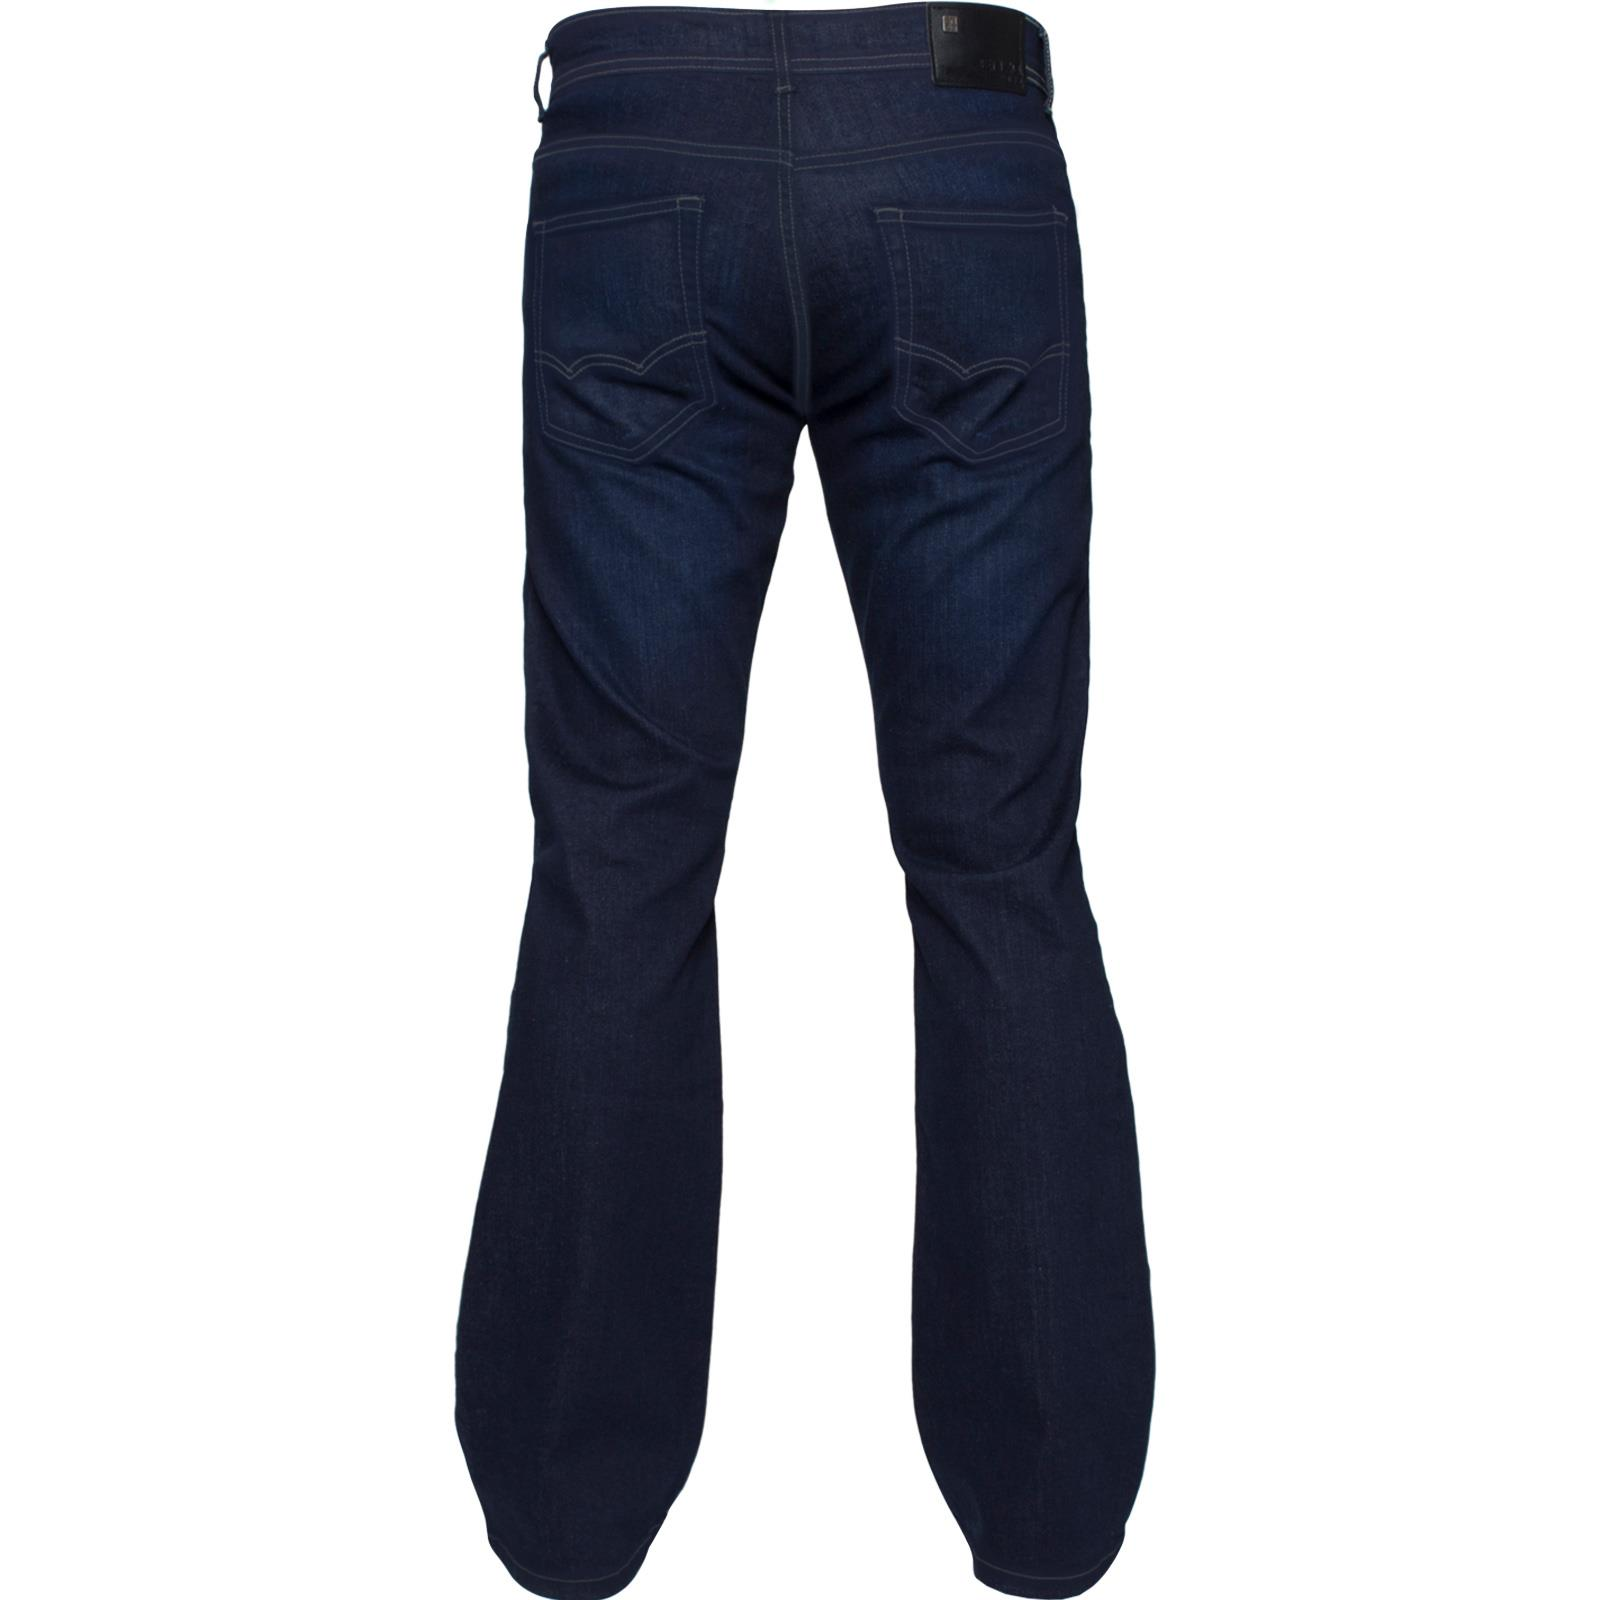 New-Enzo-Mens-Designer-Bootcut-Wide-Leg-Jeans-Flared-Stretch-Denim-All-Waists thumbnail 16